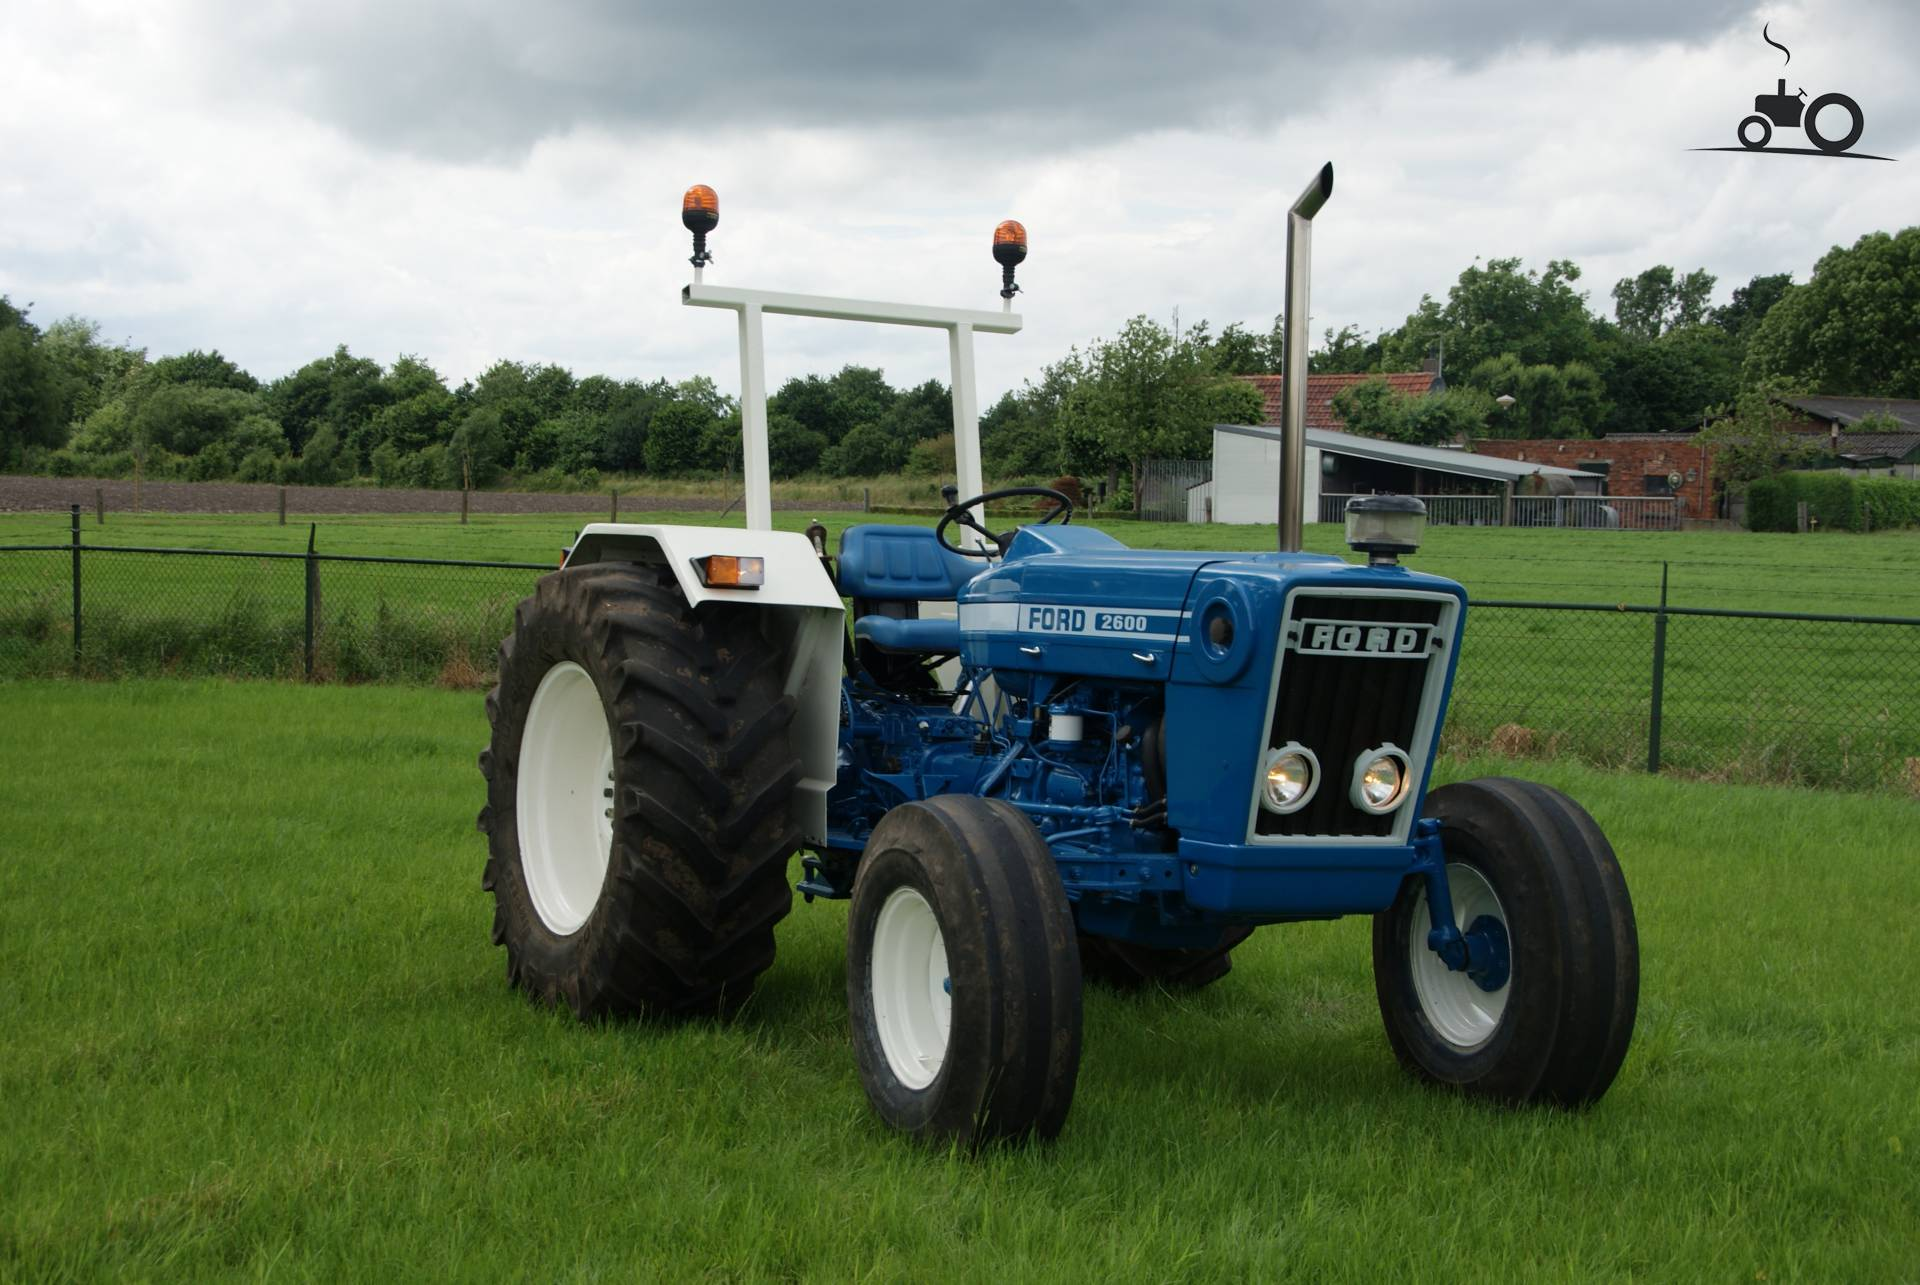 2600 Ford Tractor Specifications : Ford specs and data everything about the